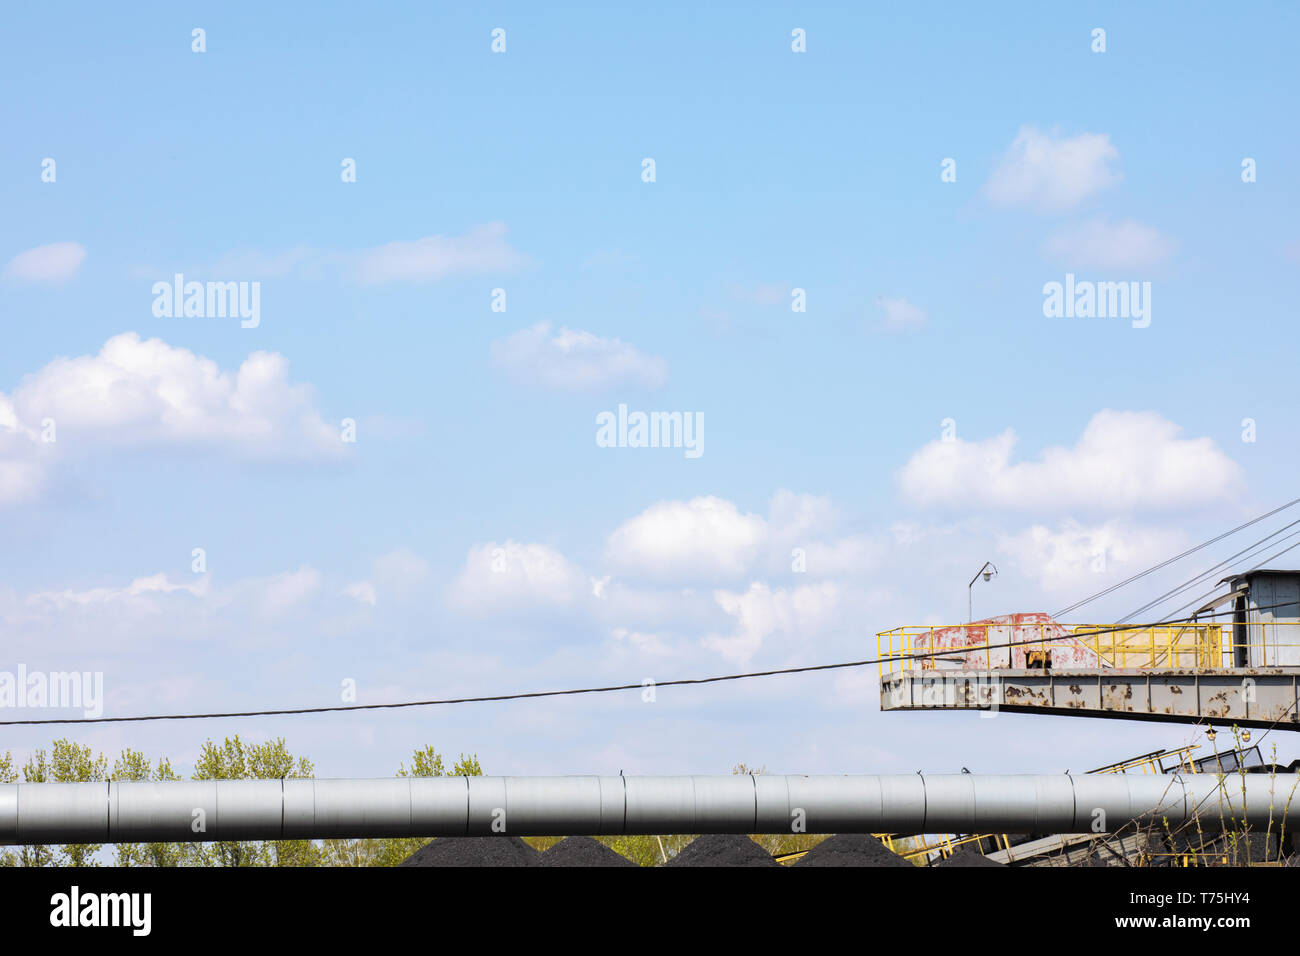 Ramp for loading coal. Old industrial architecture. Long silver pipe. Blue sky. Horizontal composition, copy space.  Kopalnia Wujek. Katowice Poland. Stock Photo